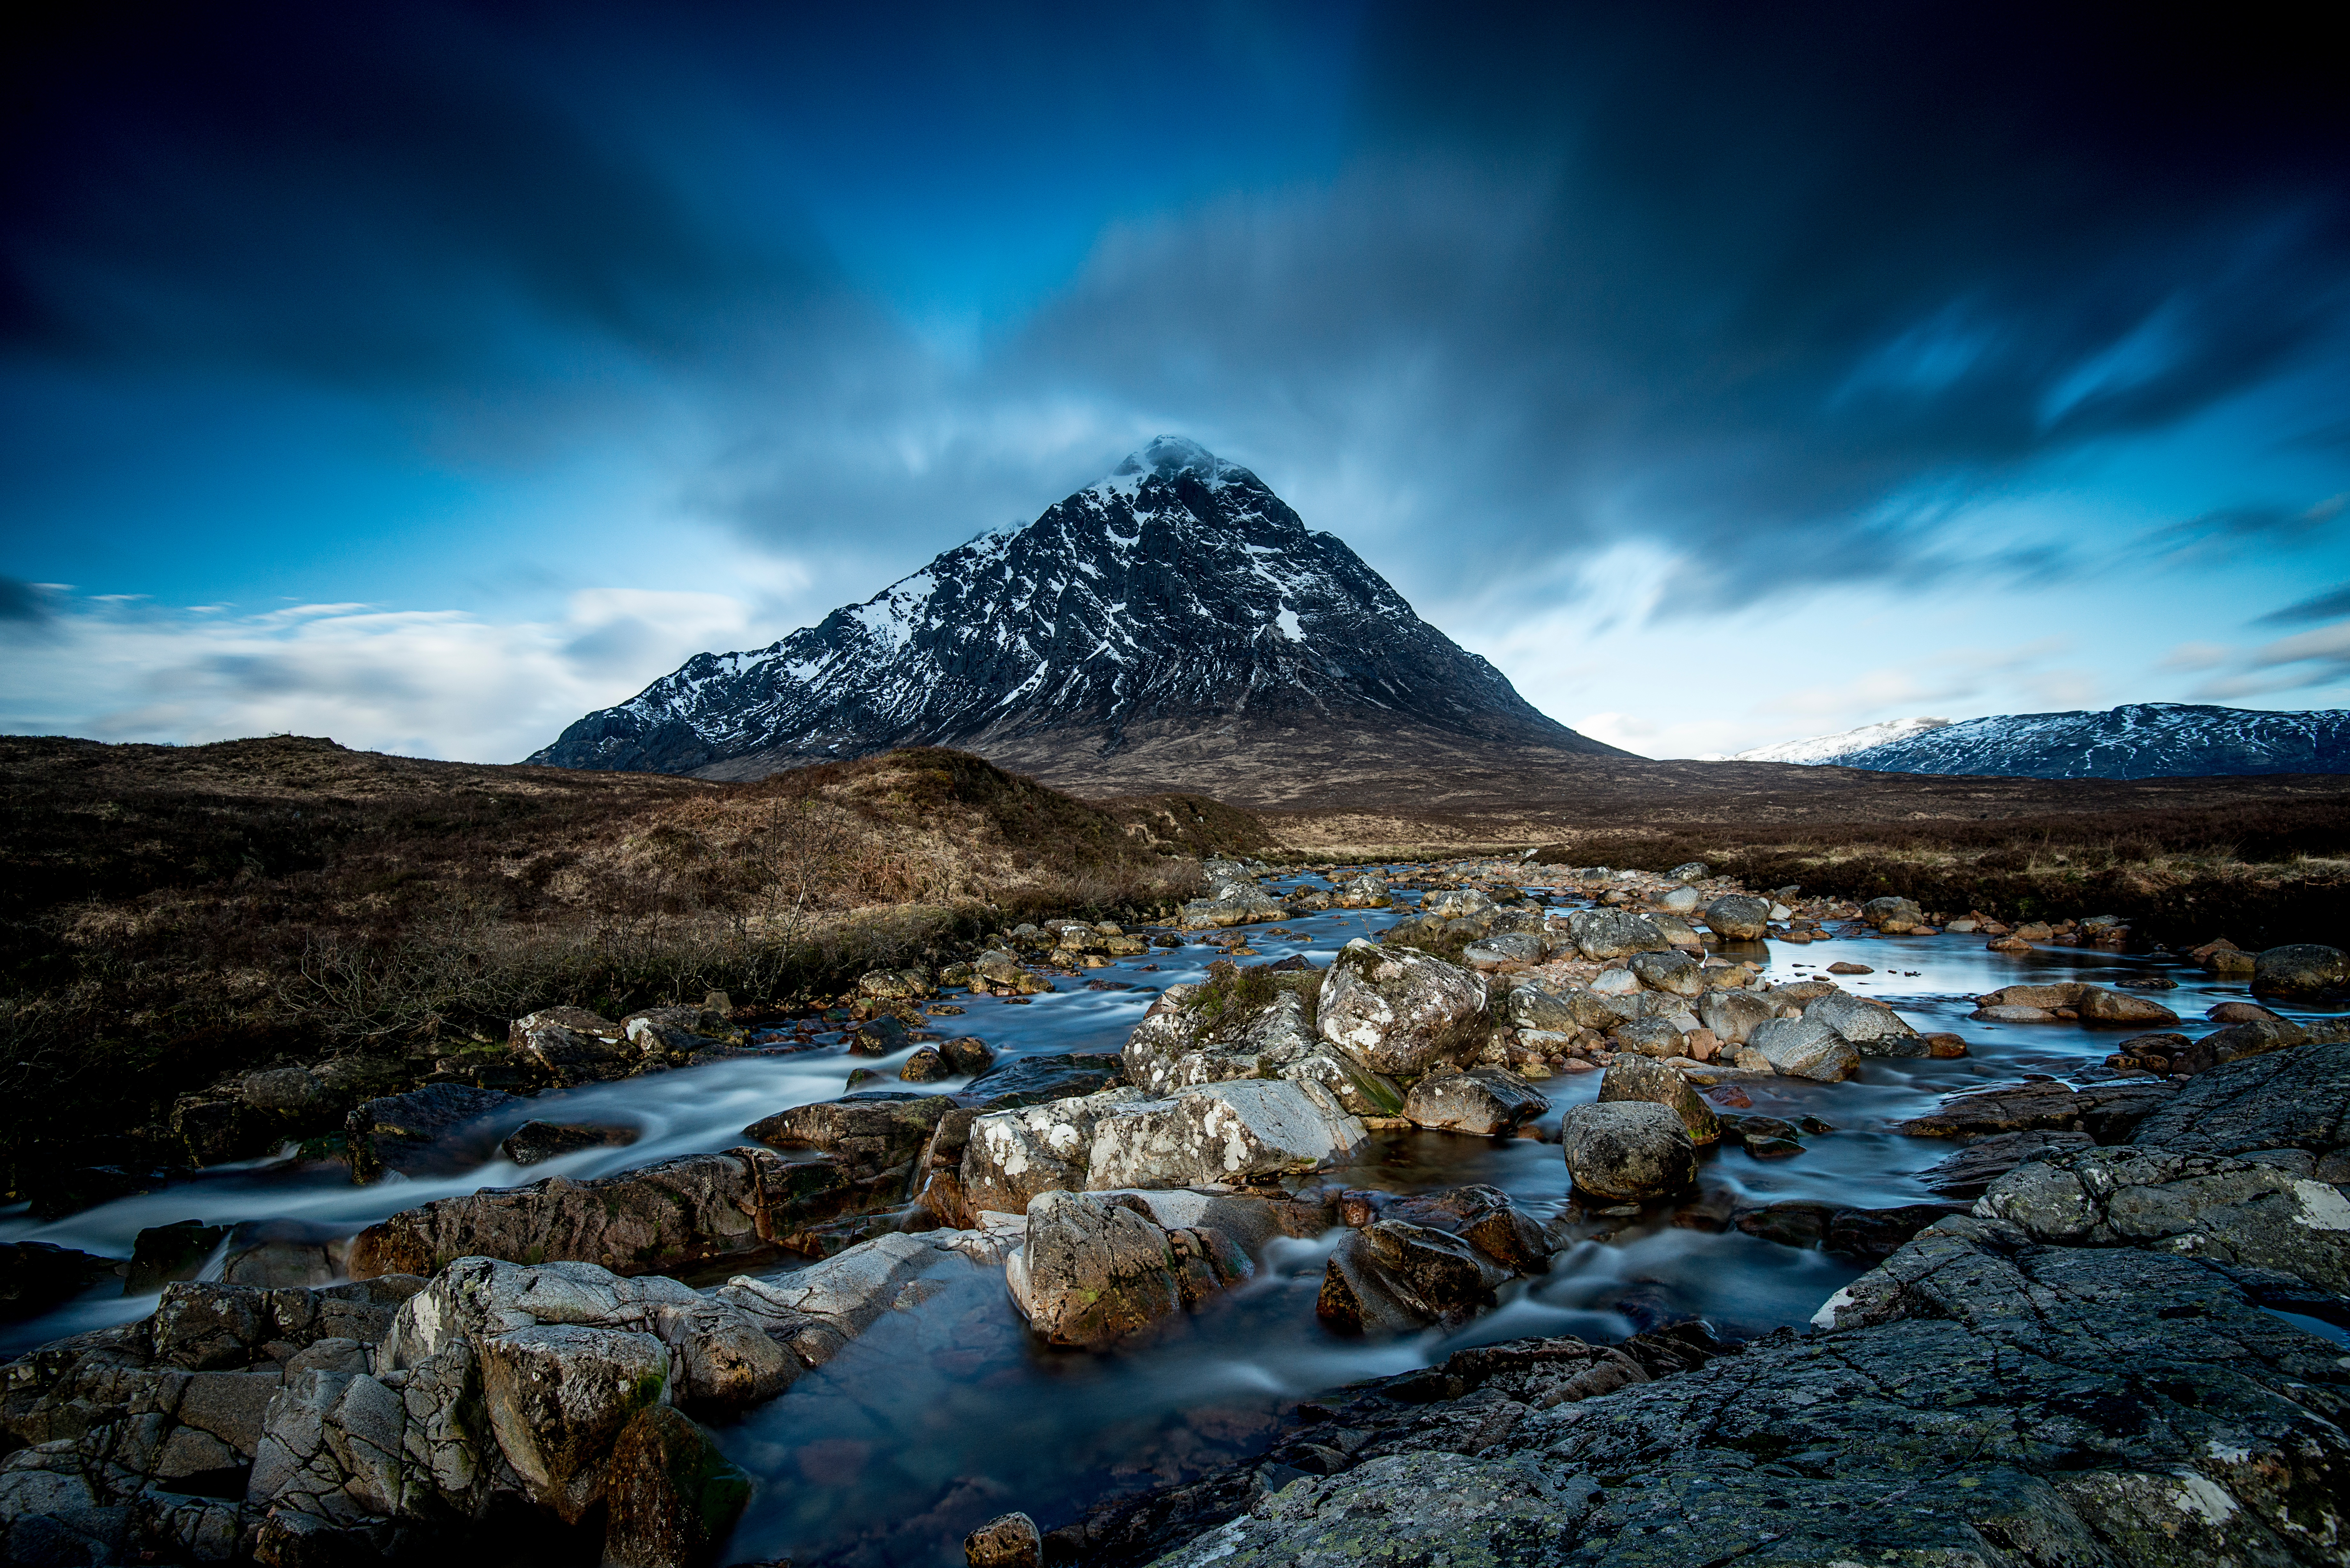 Amazing view across a moor and heading towards a mountain by crenk